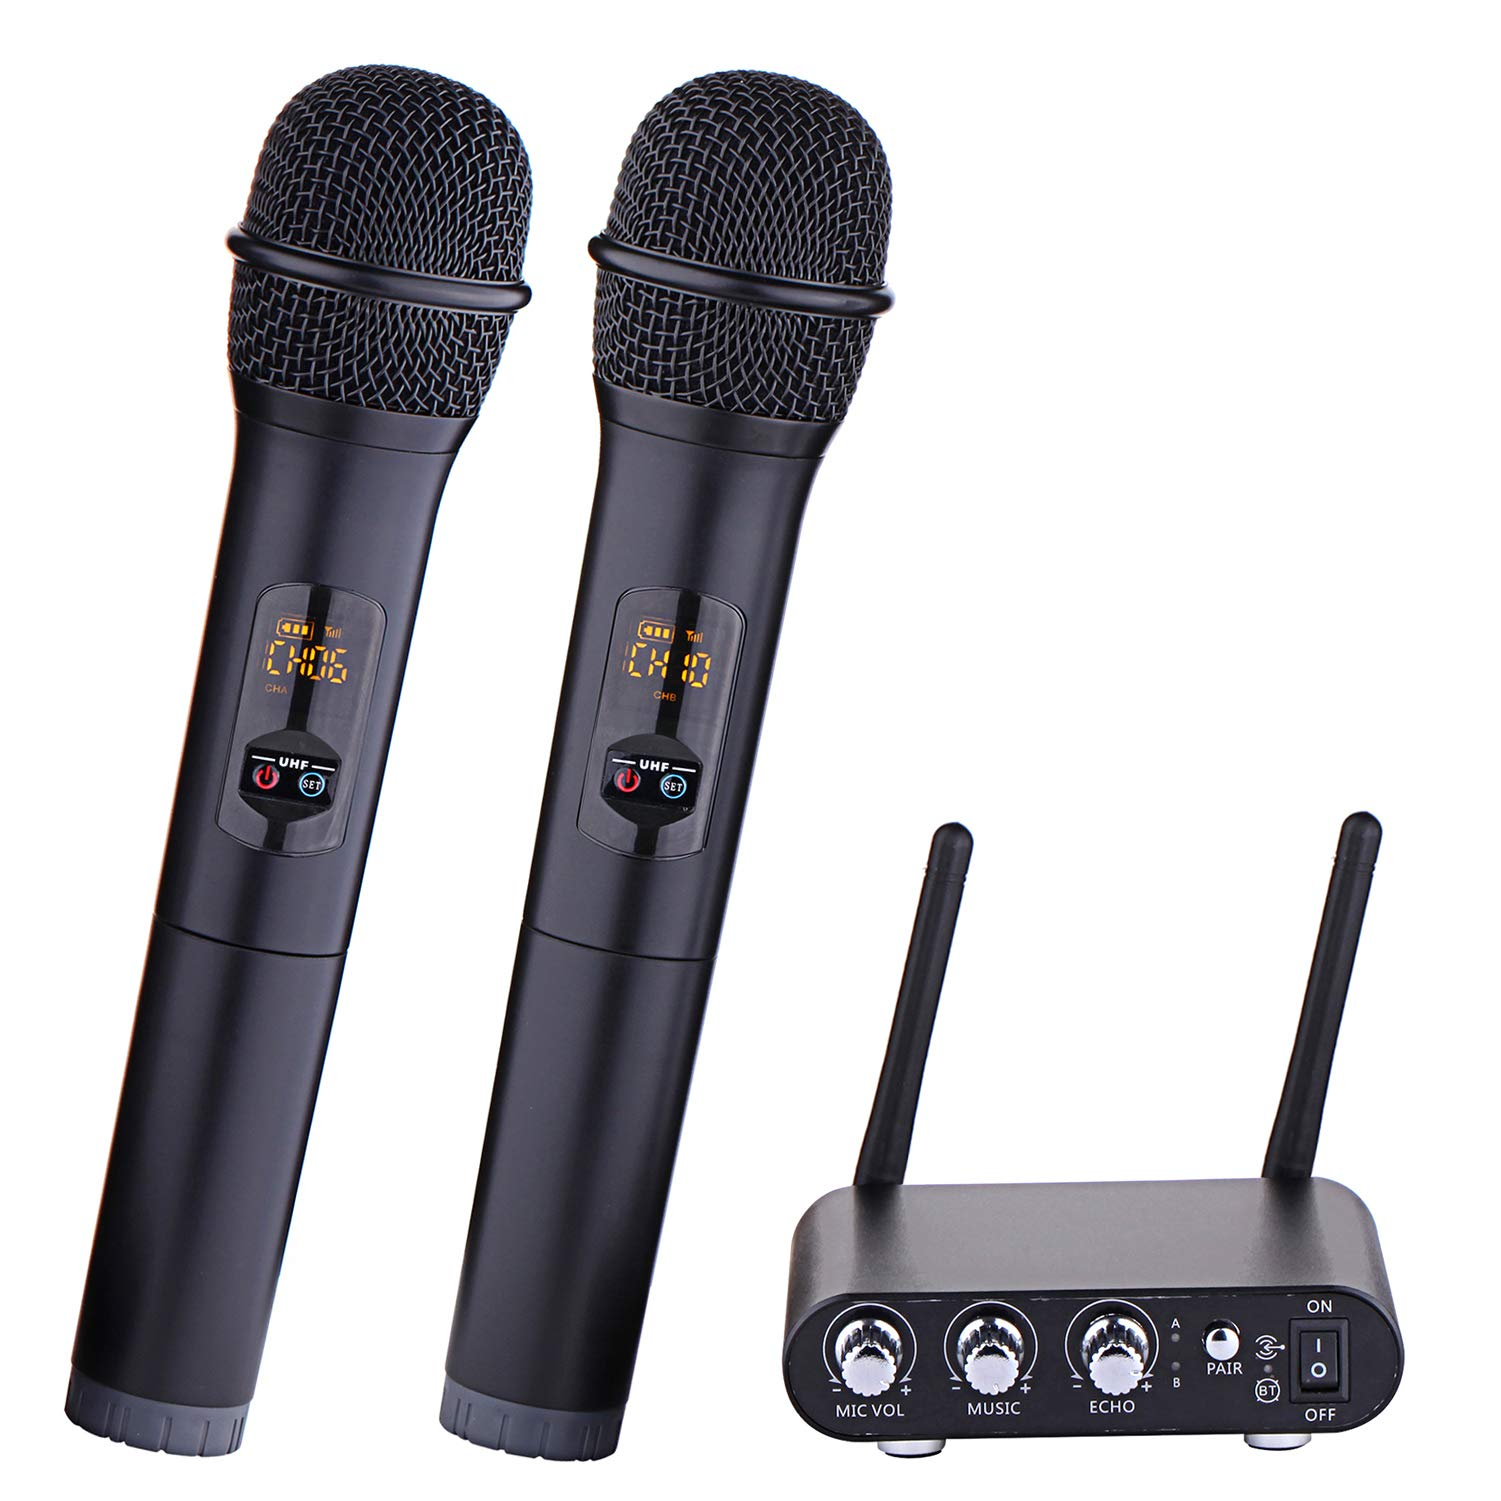 XG-WIN Wireless Dual Channel UHF Microphone System with 2 Handheld Mics Set and Mixer Receiver Base for Family Party, Church, Karaoke Singing-K38 by XG-WIN